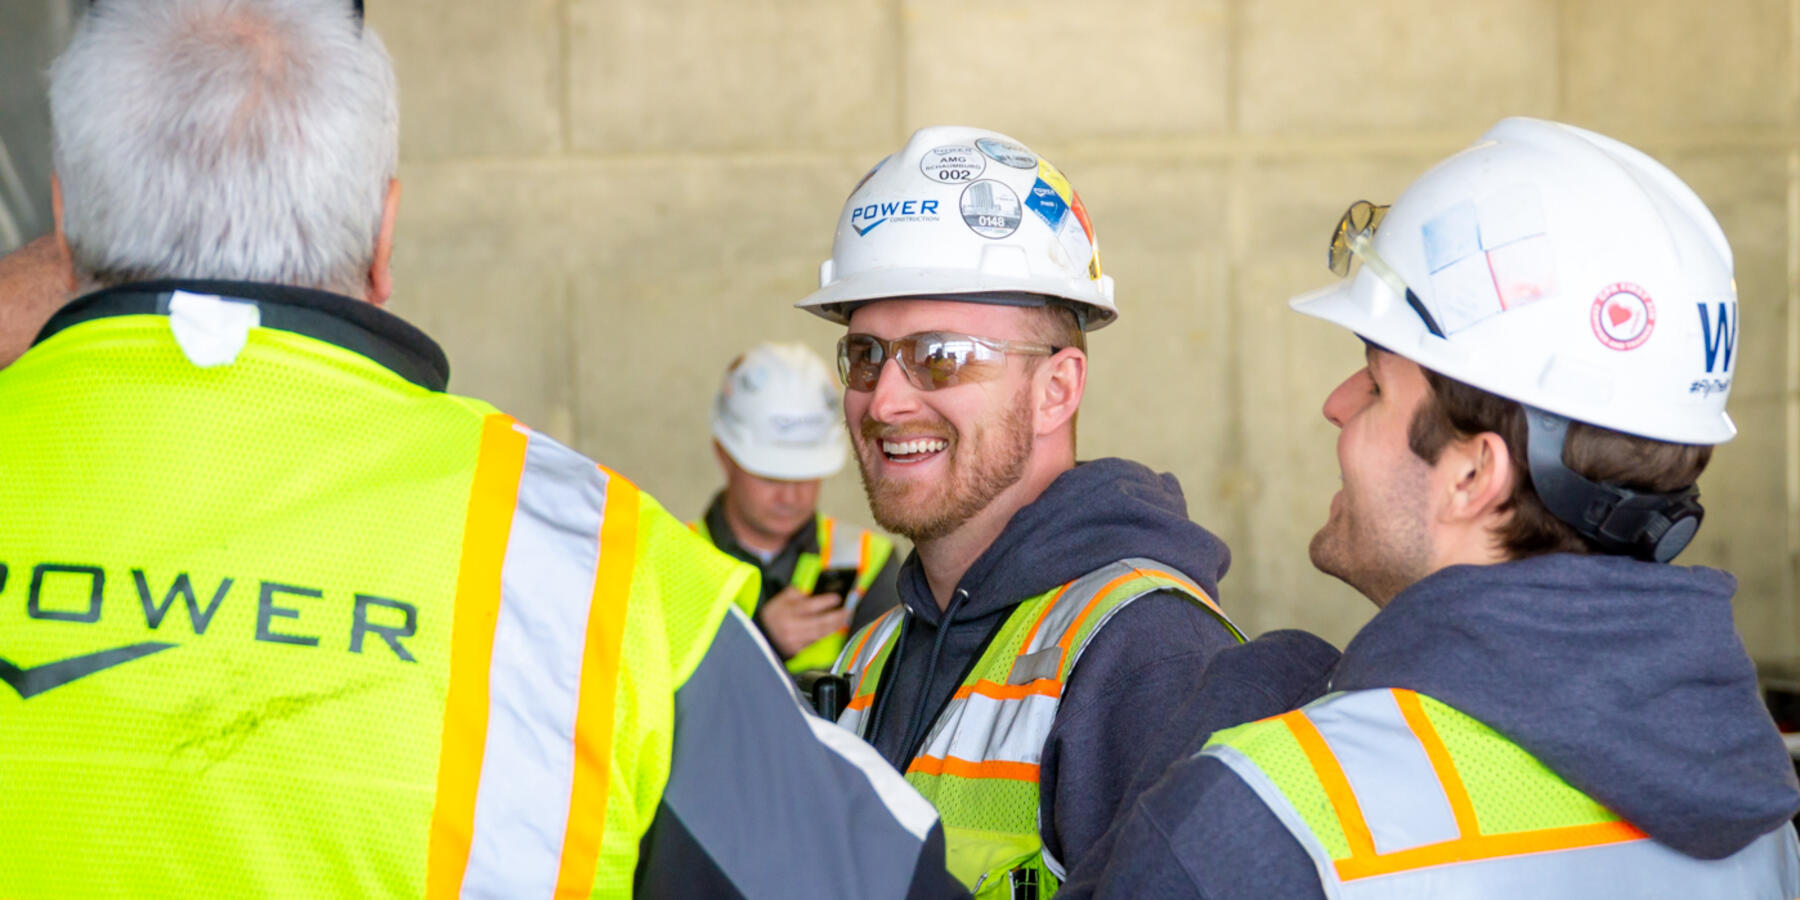 Power Construction Chicago Careers Employment Benefits